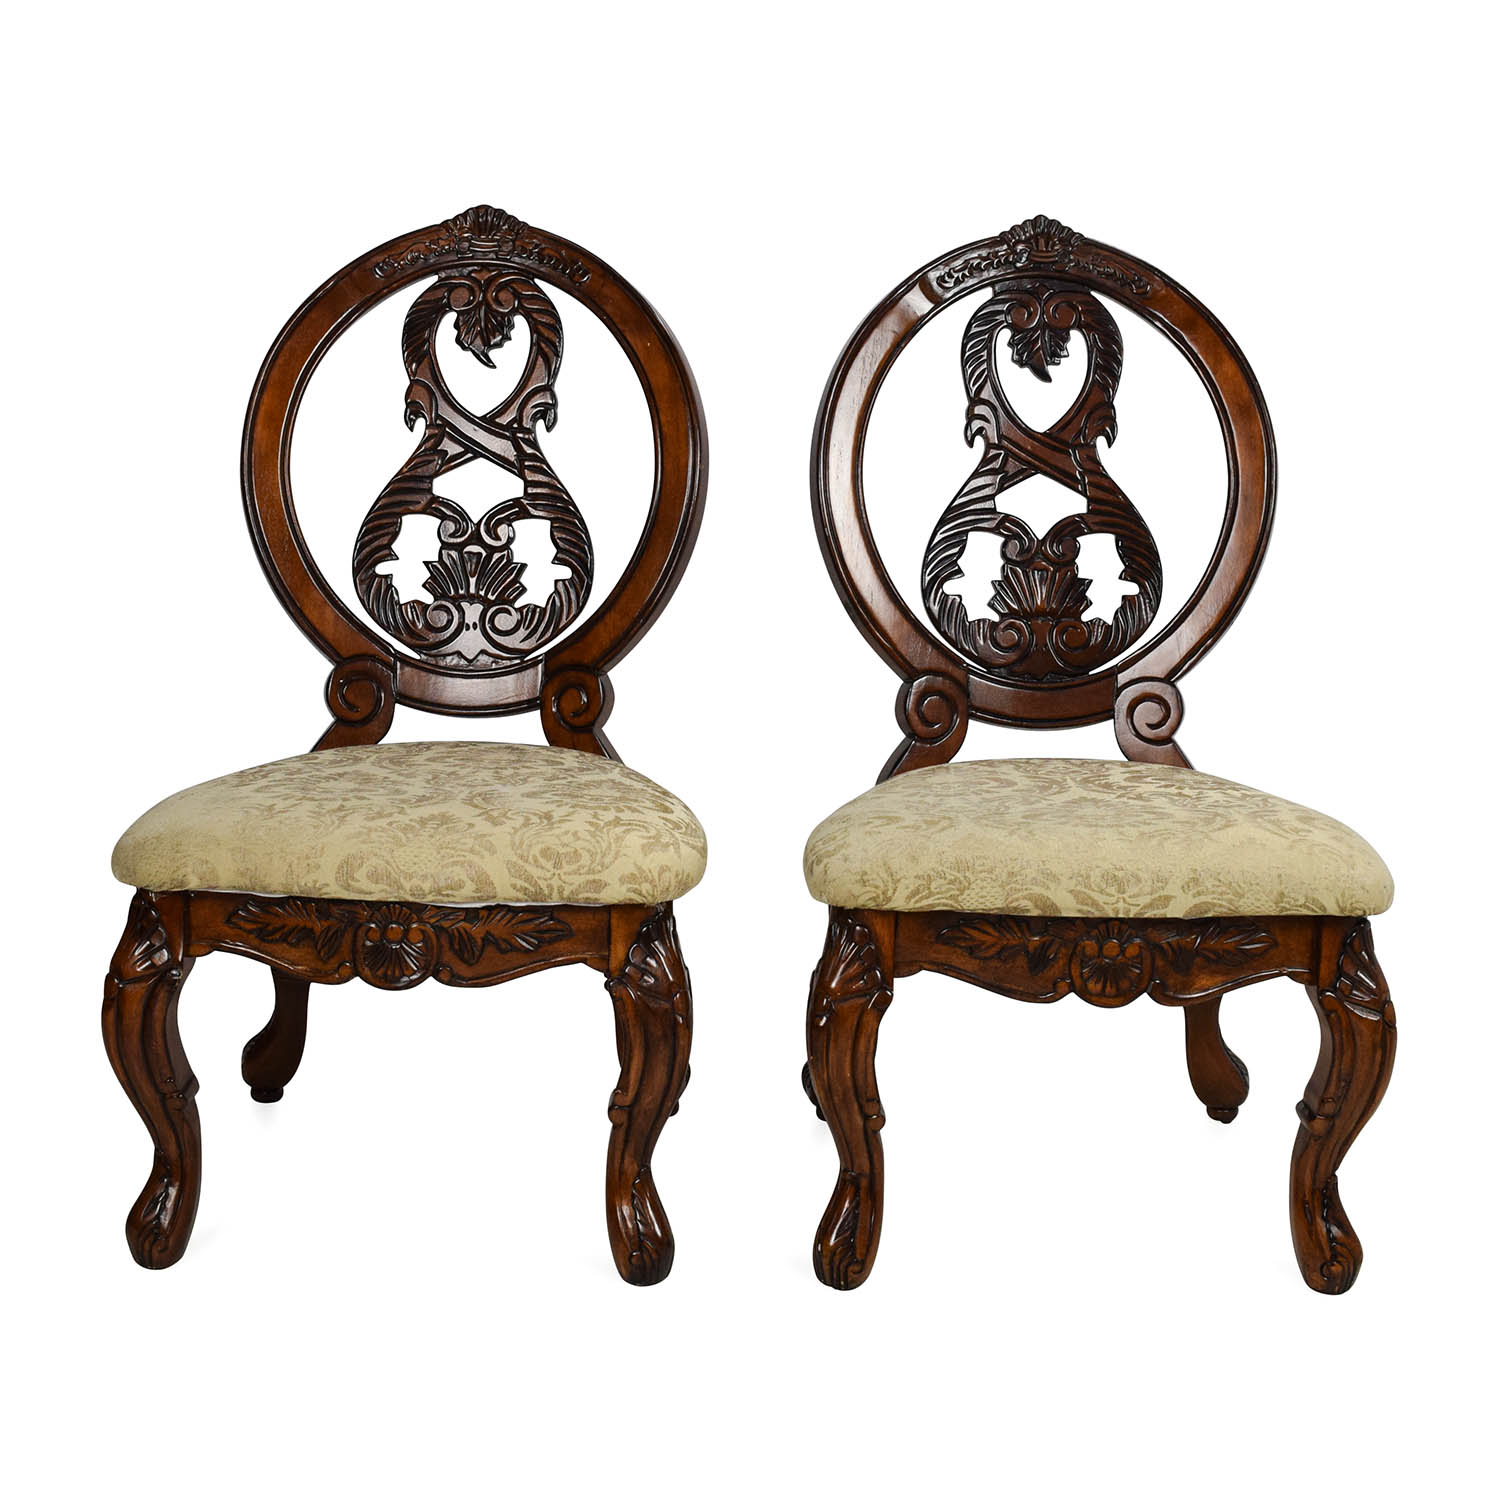 Tuscany II Tuscany II Traditional Dining Chair Pair